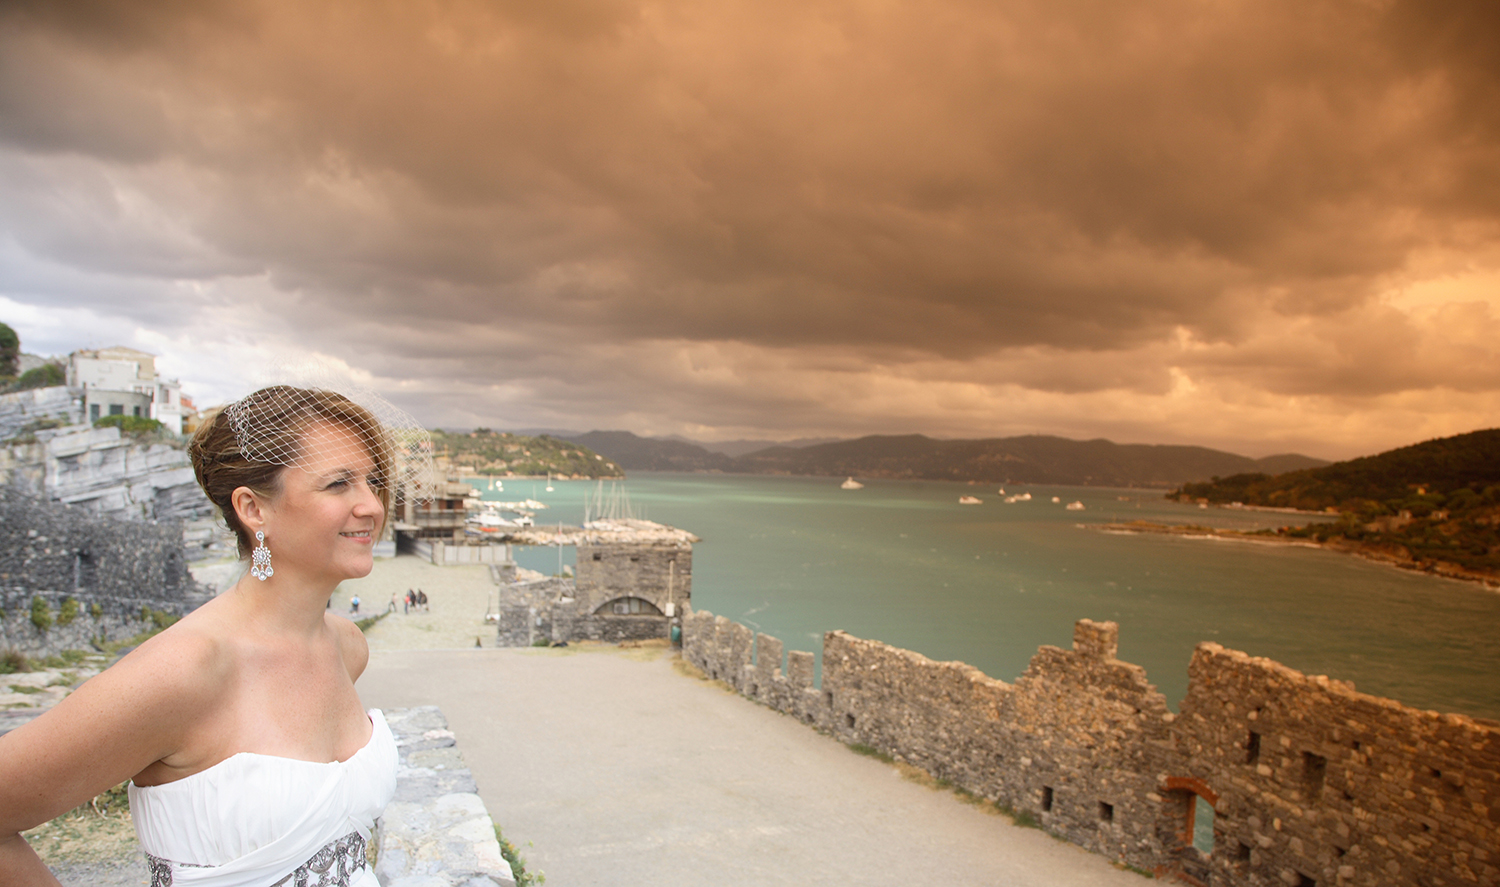 Overlooking the resplendent Ligurian Coast from just below St. Peter's Church in Portovenere. Photograph by David Bastianoni